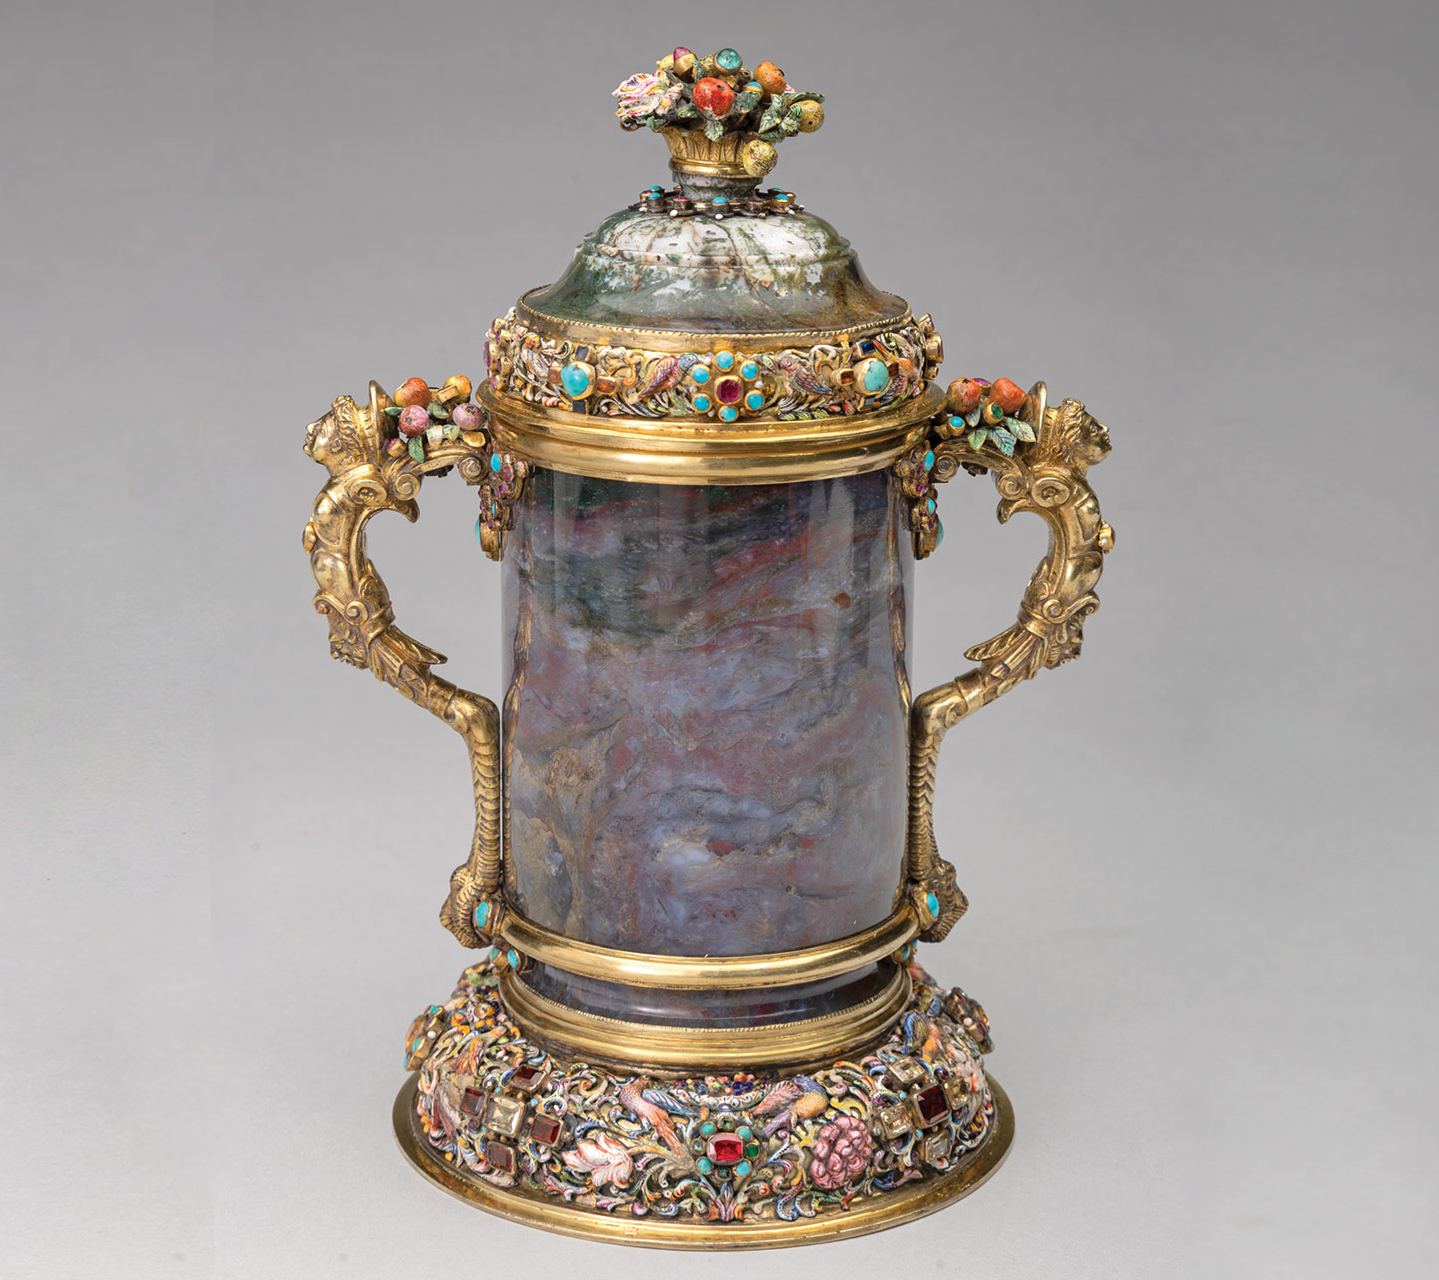 Figure 3 (left): after treatment, Possibly Johann Zeidler, Two-Handled Covered Cup, Nördlingen, Germany, mid-17th century, moss agate, silver-gilt, and enamel on copper with rubies, garnets, emeralds, sapphires, citrine, and turquoise. Taft Museum of Art, 1931.267